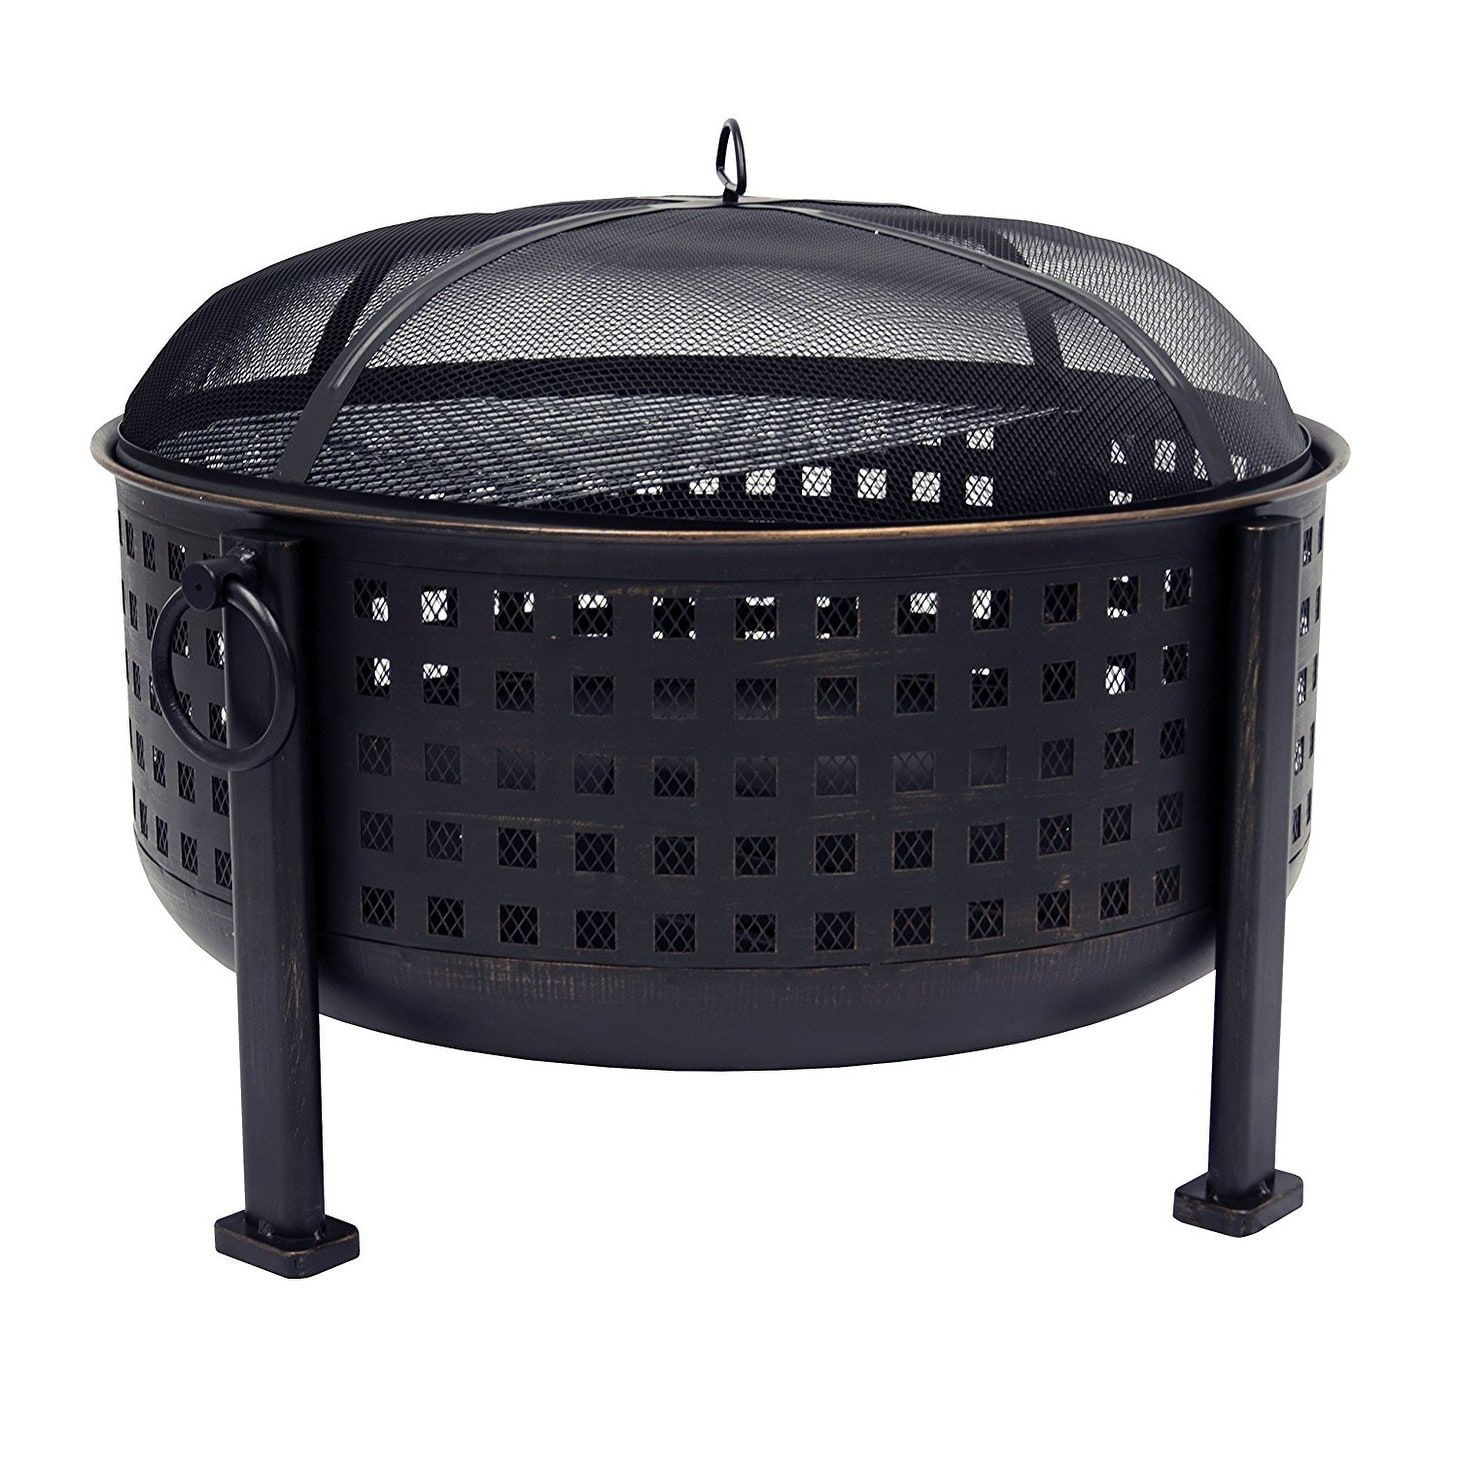 2625ac6f38df0ef5fac7480ef23e7ea9 Top Result 50 Awesome Steel Outdoor Fireplace Gallery 2018 Hiw6